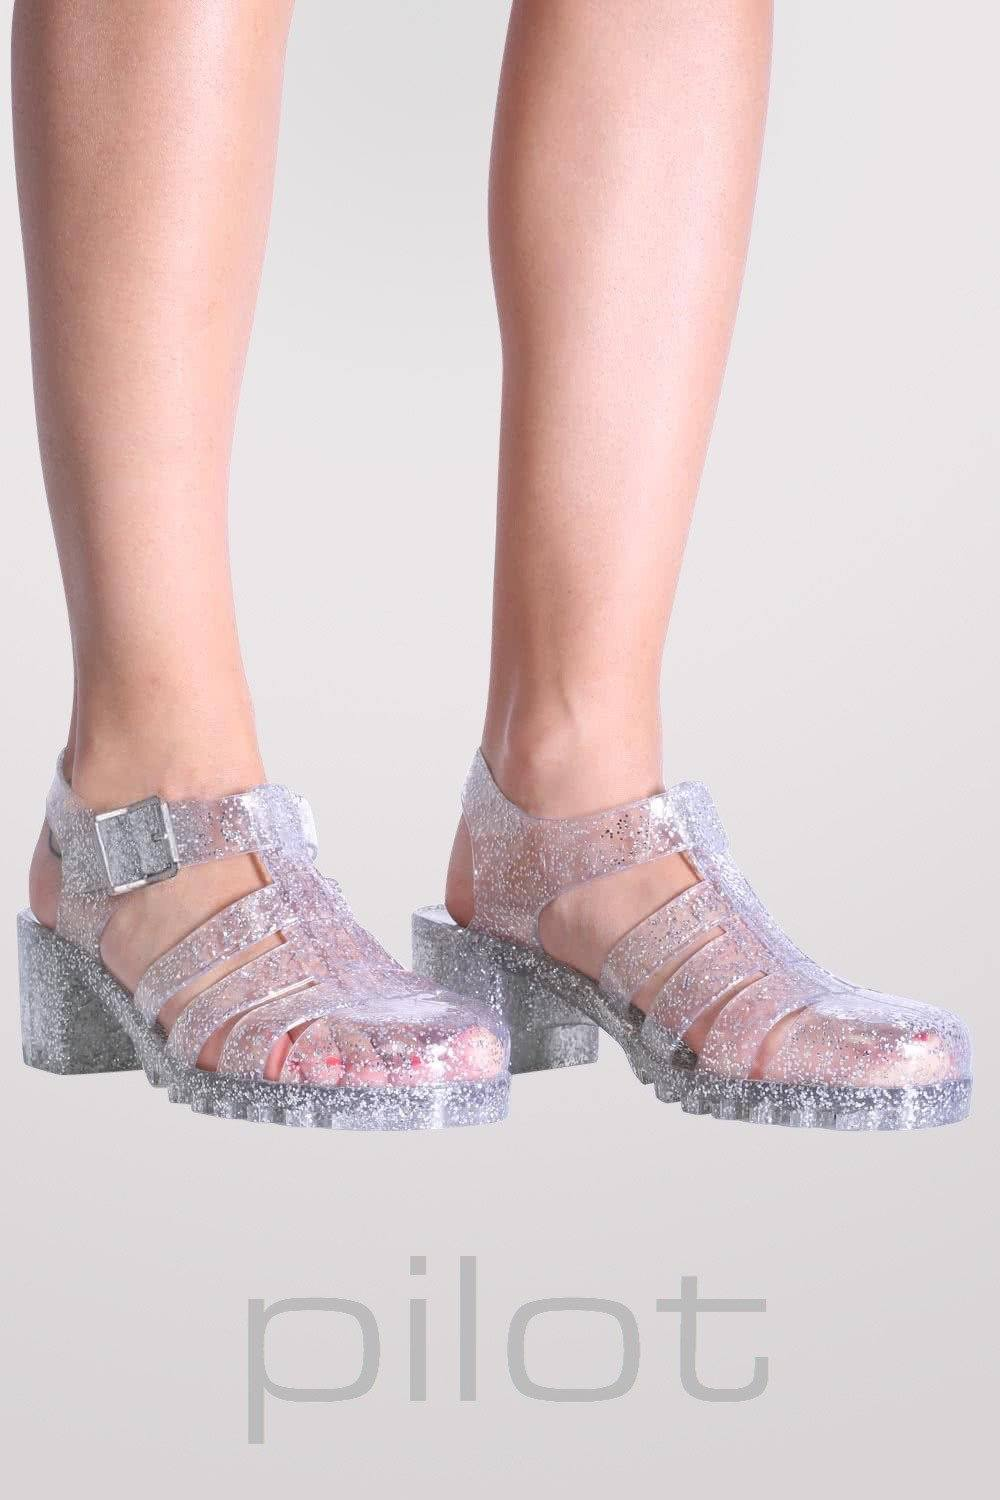 a7ef6f64cbb2 Jelly Shoes in Clear Glitter with Block Heels Sandals Adult Womens ...